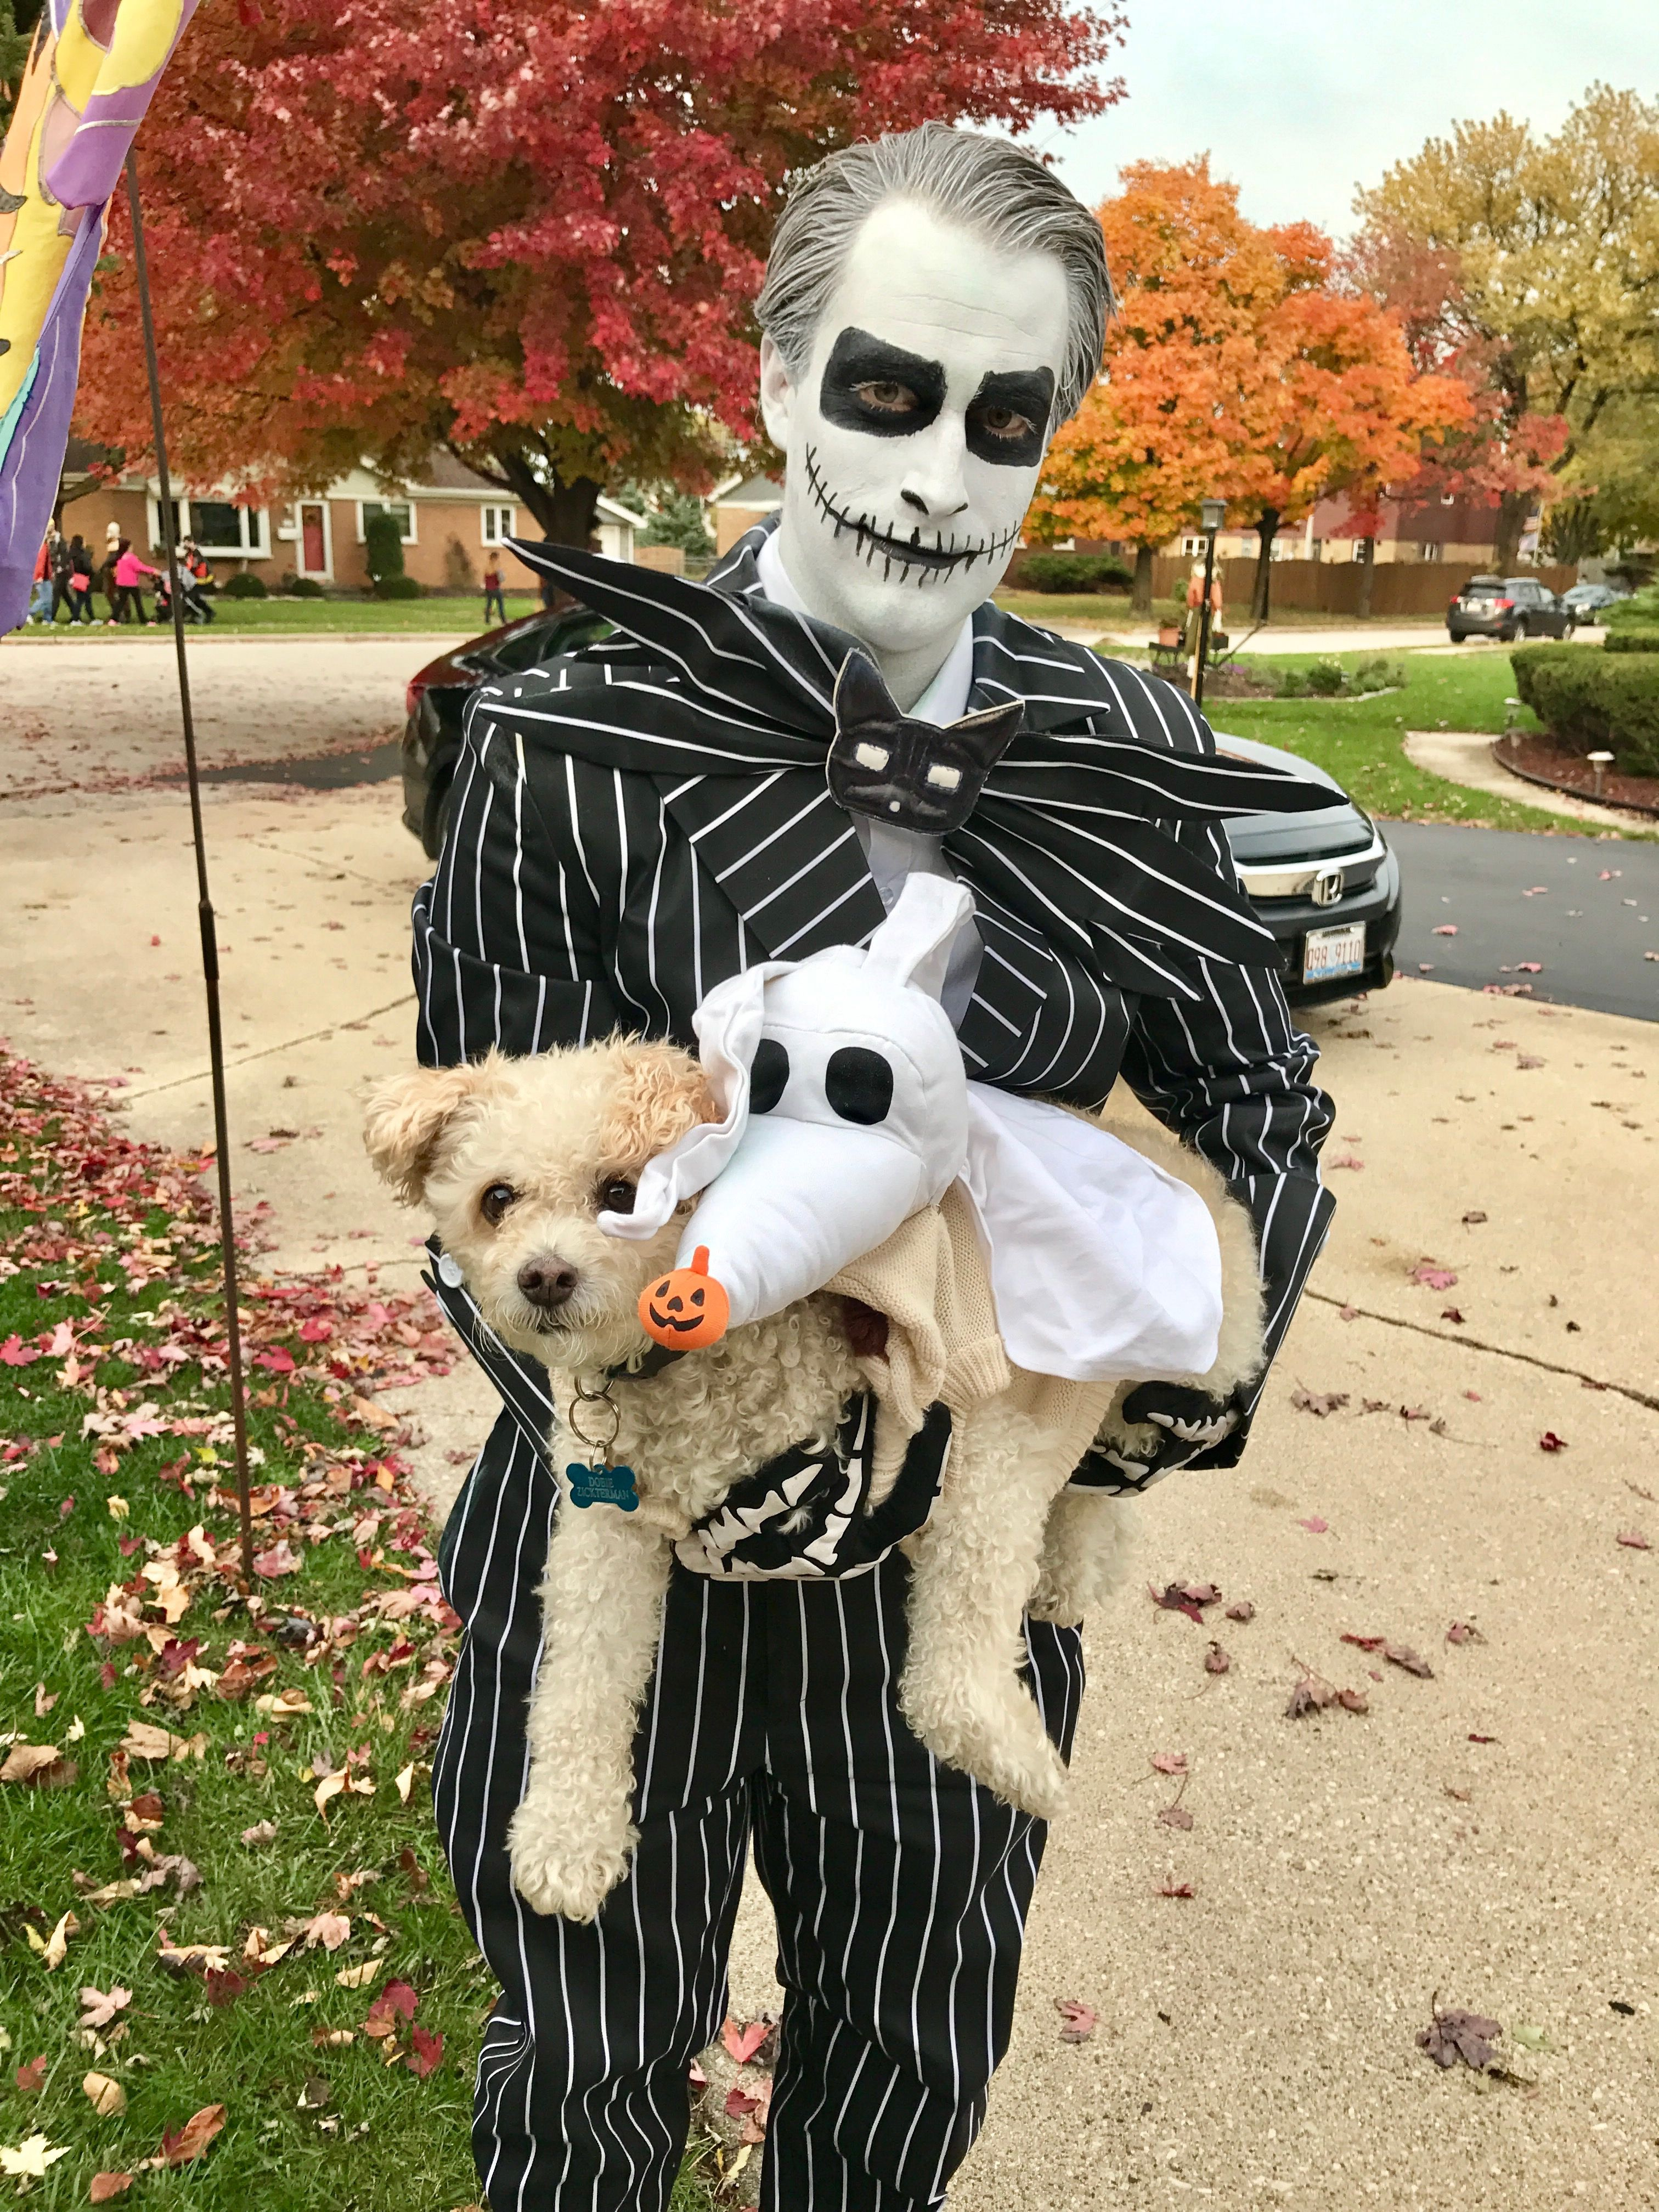 Jack and his dog Zero from The Nightmare Before Christmas ...